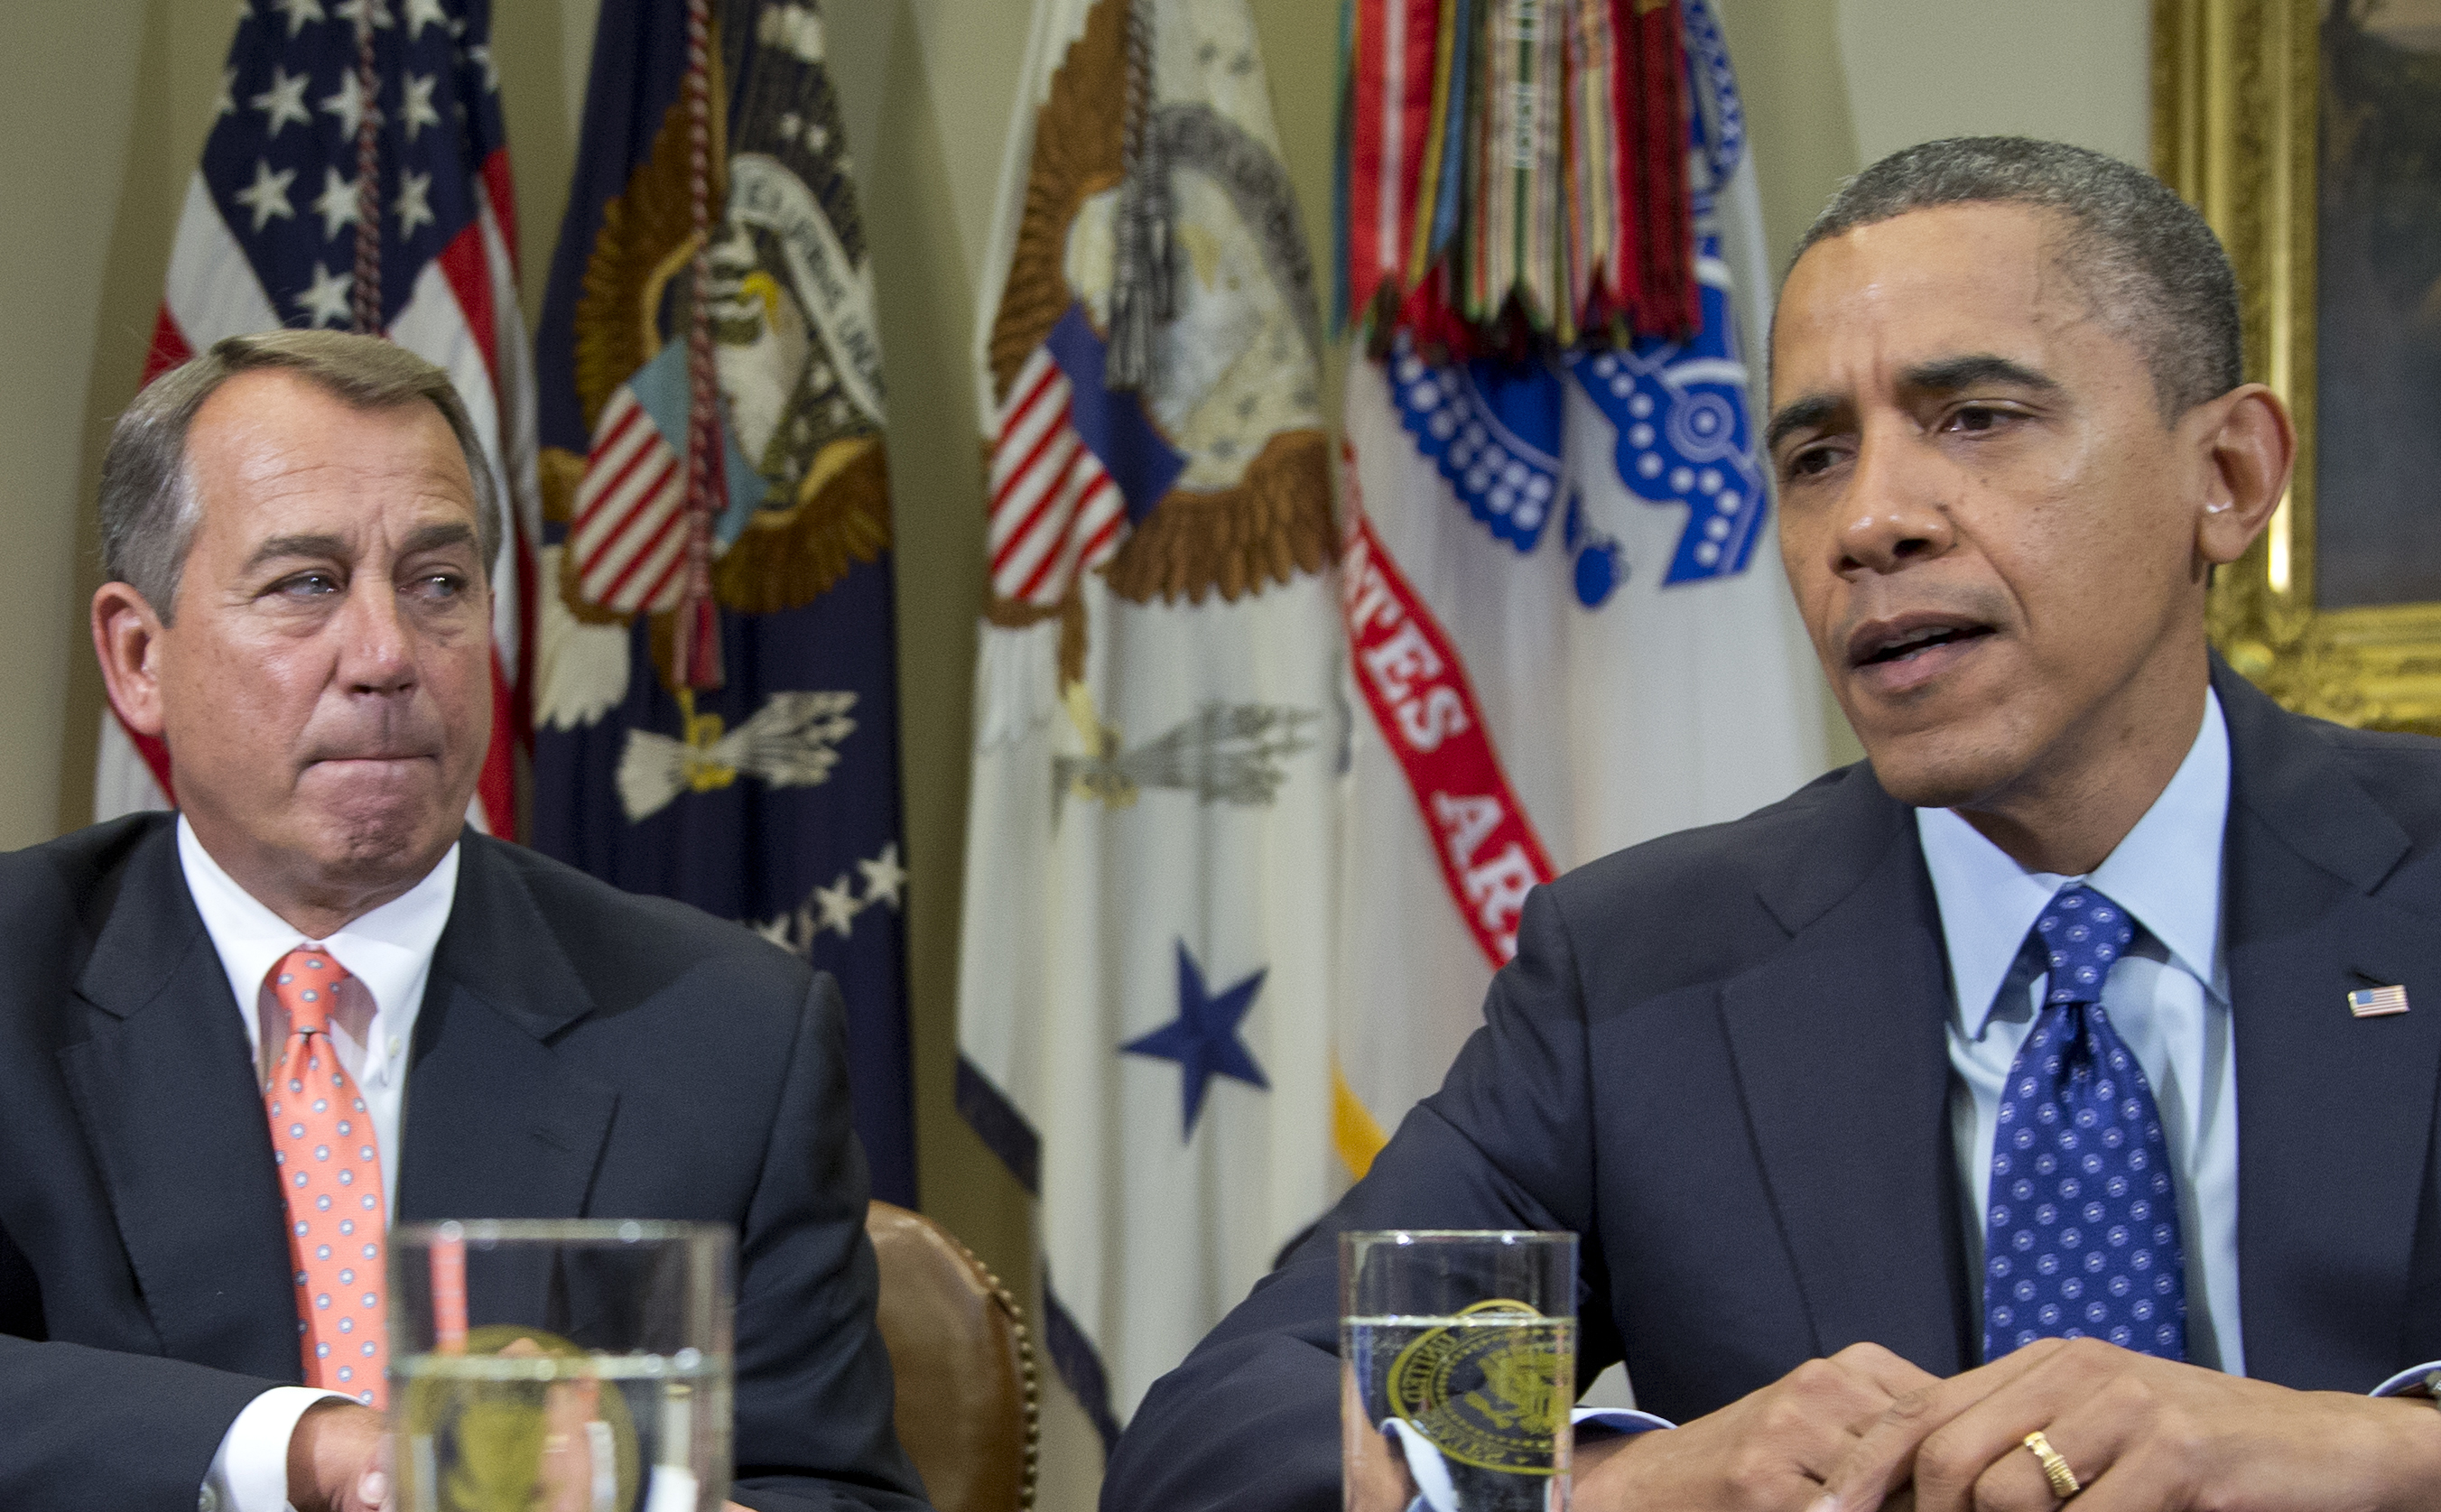 FILE - This Nov. 16, 2012 file photo shows President Barack Obama, accompanied by House Speaker John Boehner of Ohio, speaking to reporters in the Roosevelt Room of the White House in Washington. Even if Congress and the White House fail to strike a budget deal by New Year's Day, reality may be a lot less bleak then the scenario that's been spooking employers and investors and slowing the U.S. Economy. The tax increases and spending cuts could be retroactively repealed after Jan. (AP Photo/Carolyn Kaster, File)